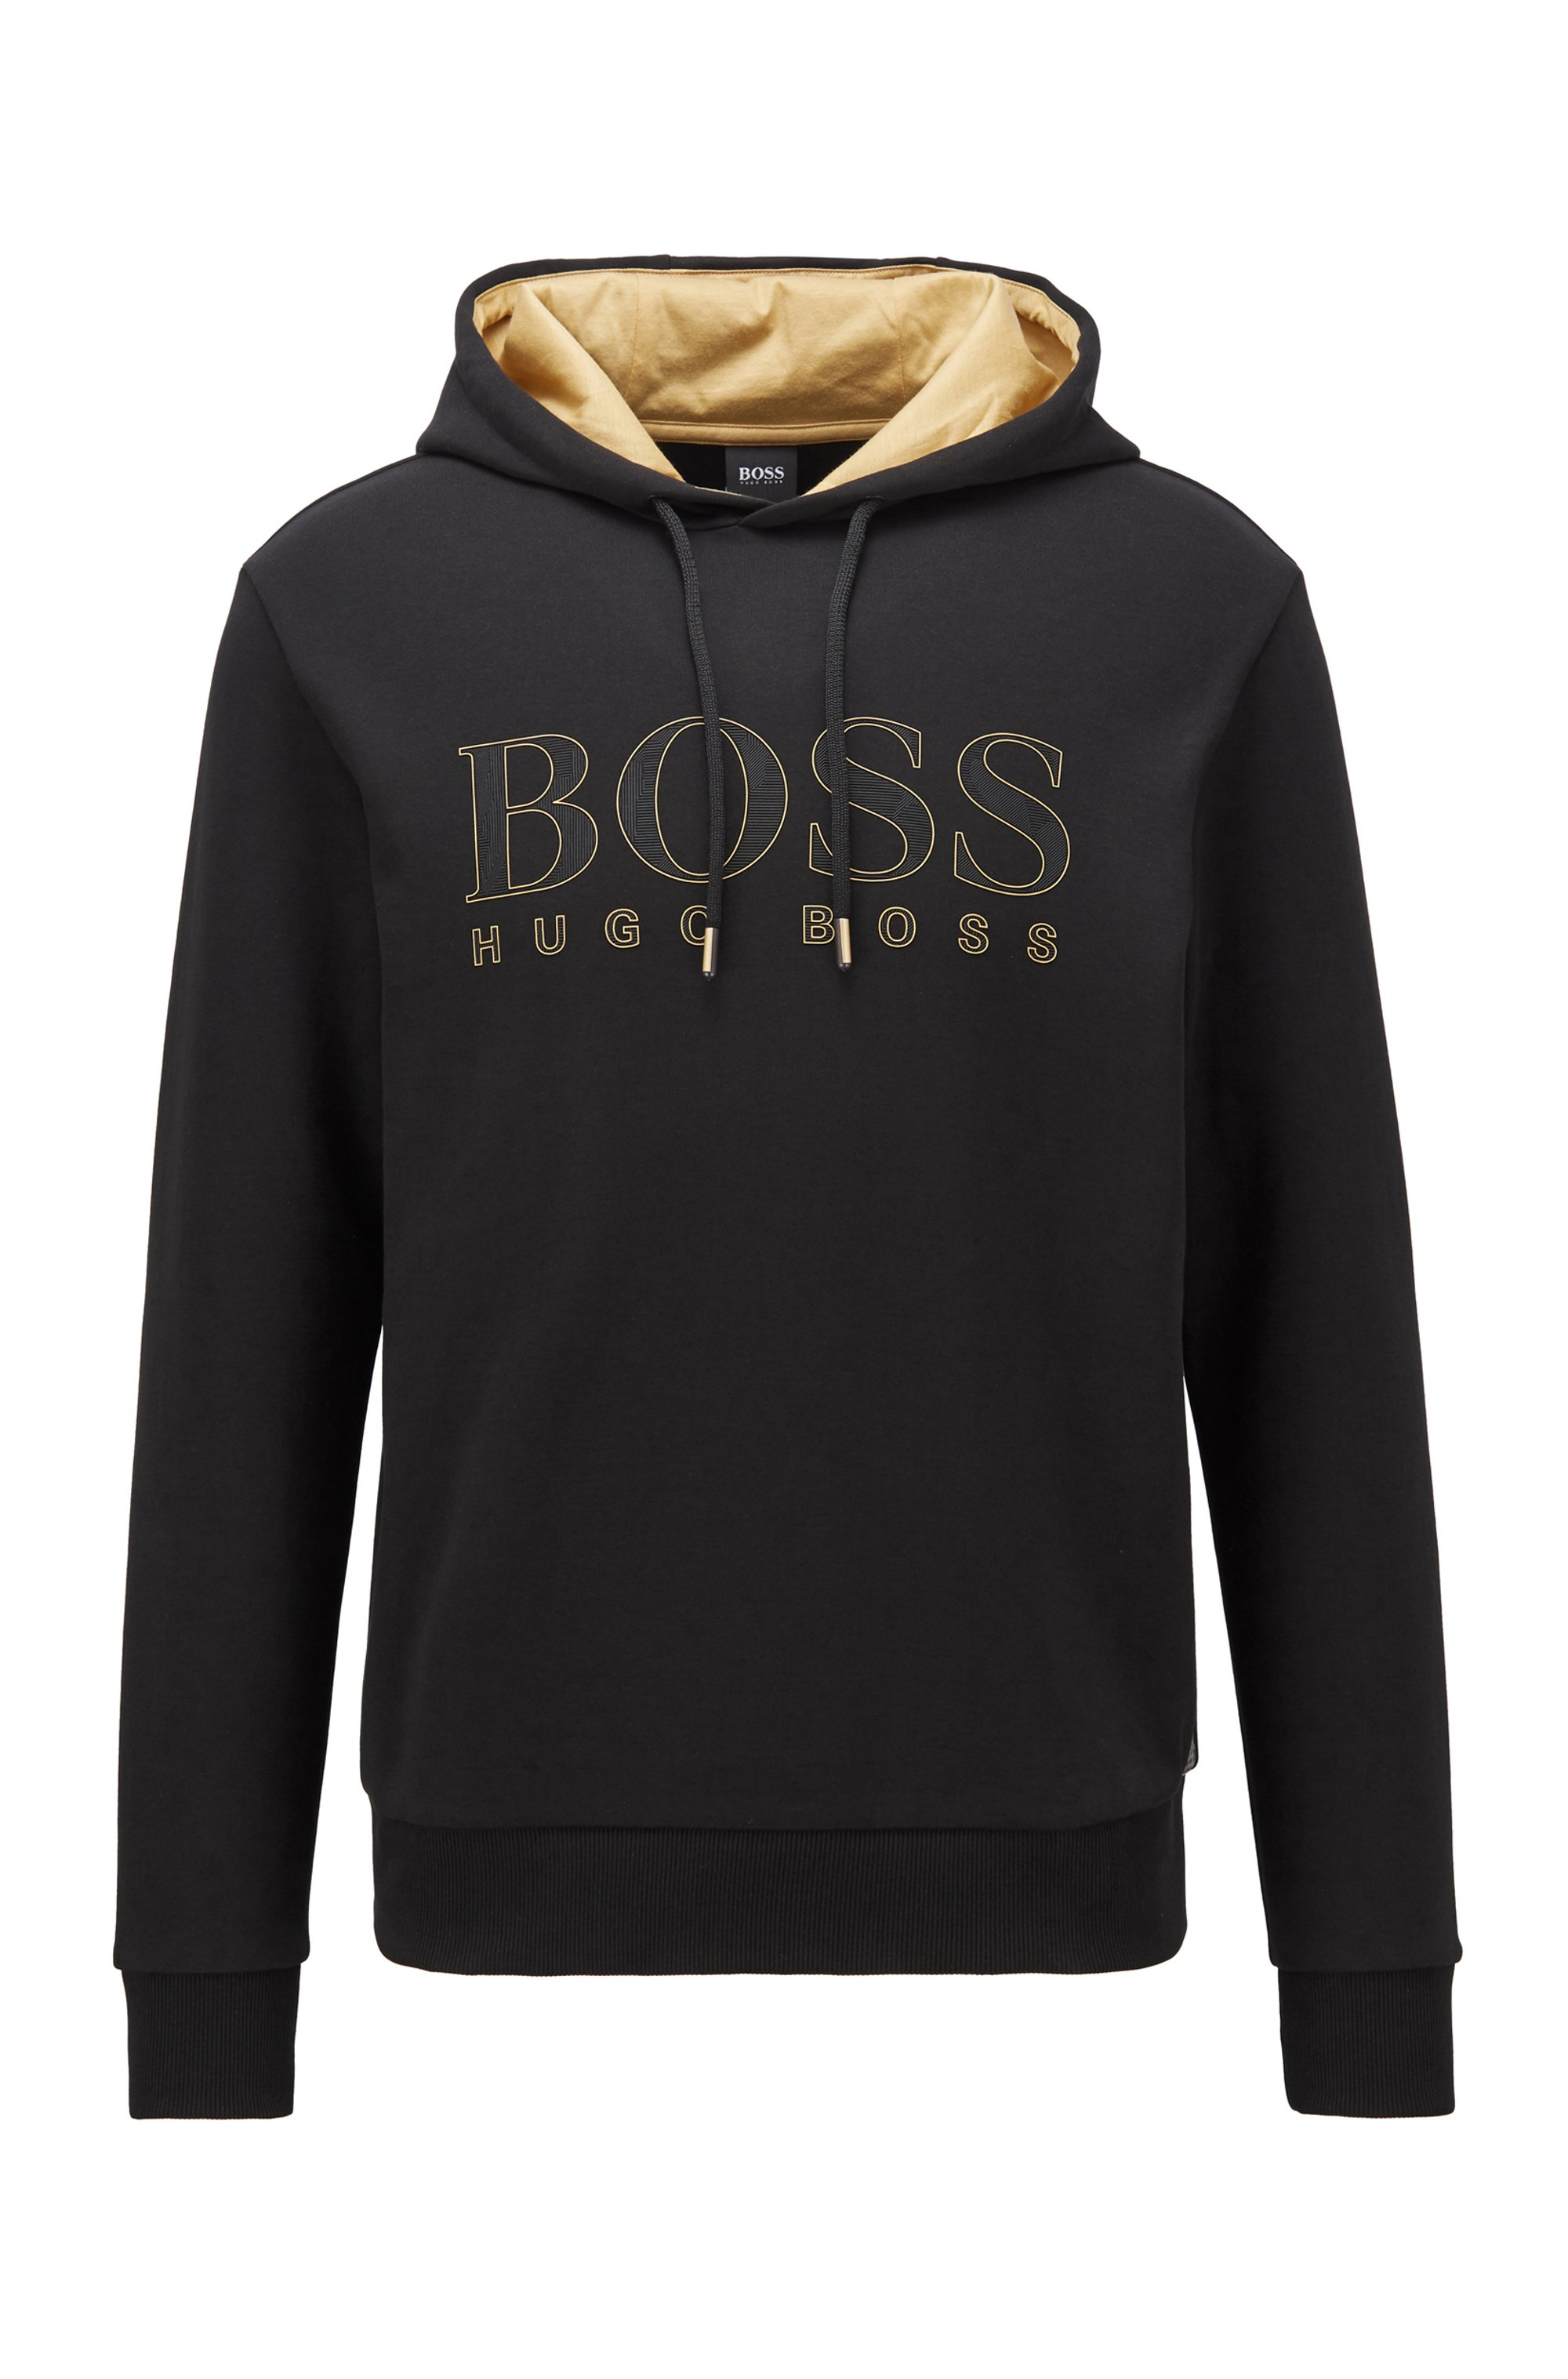 Sweatshirt with gold-tone hood lining and logo, Black